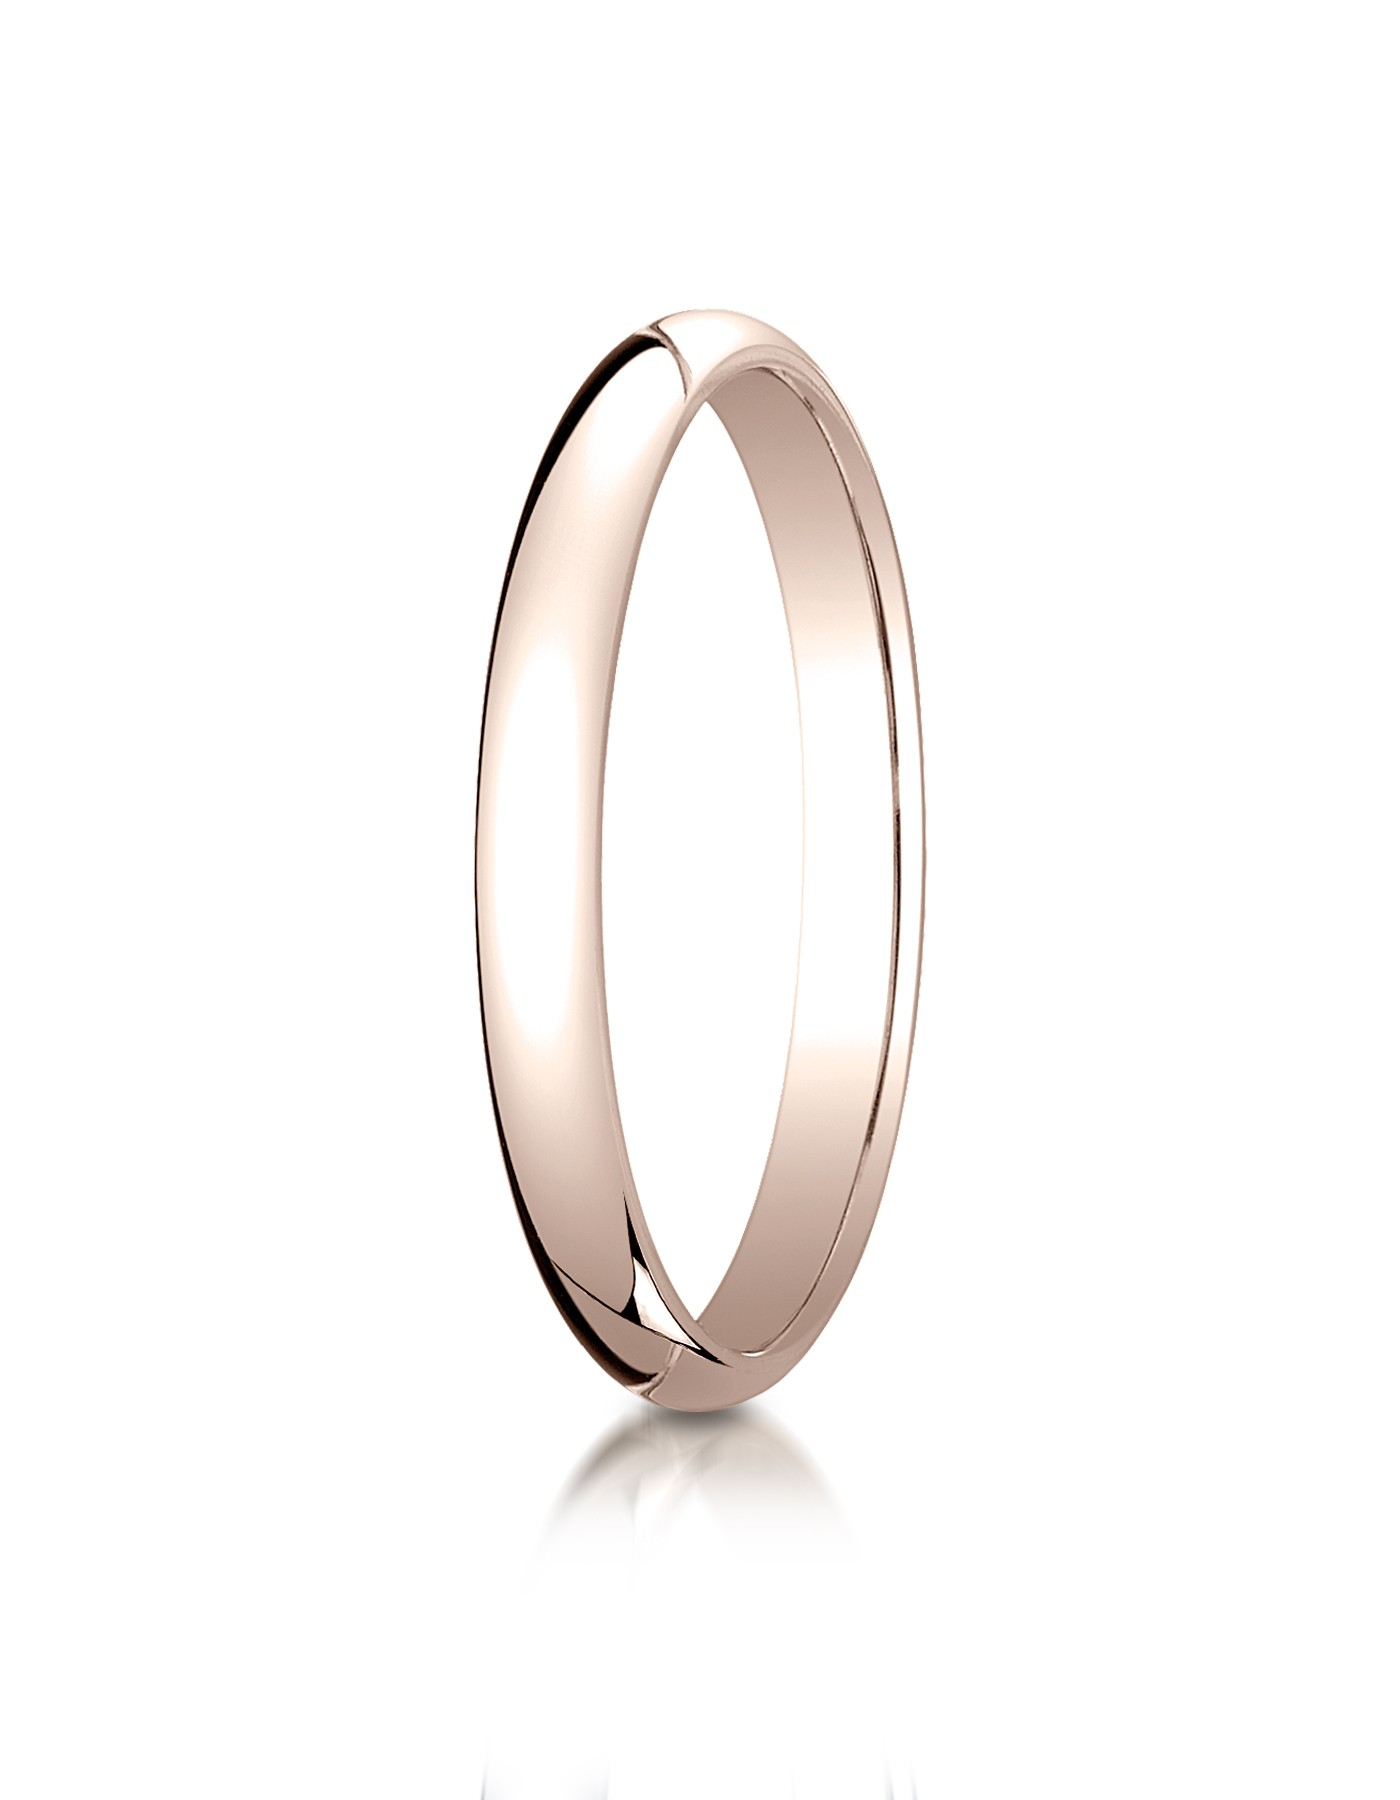 14k Rose Gold 2.5 Mm Slightly Domed Traditional Oval Ring